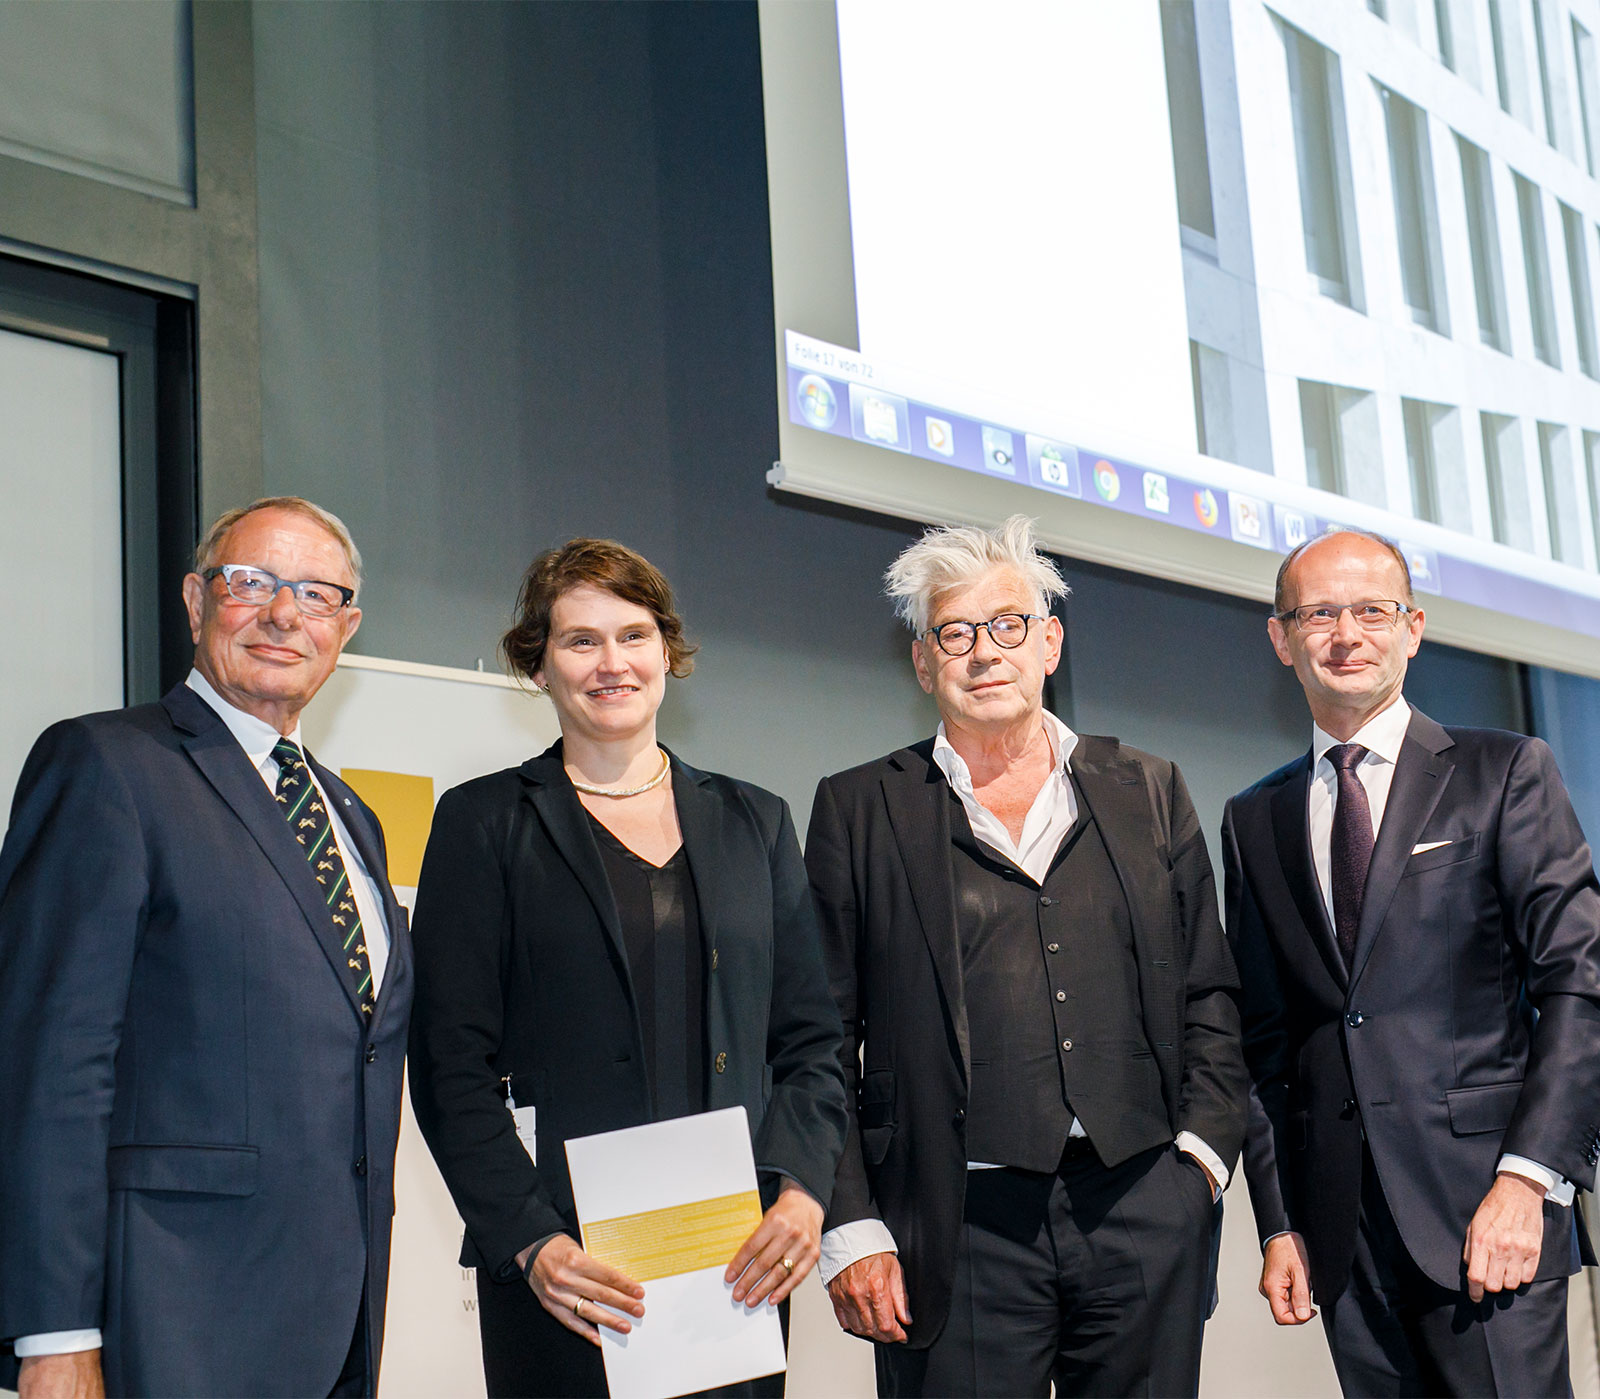 Natural Stone and Architecture - German Natural Stone Award ceremony